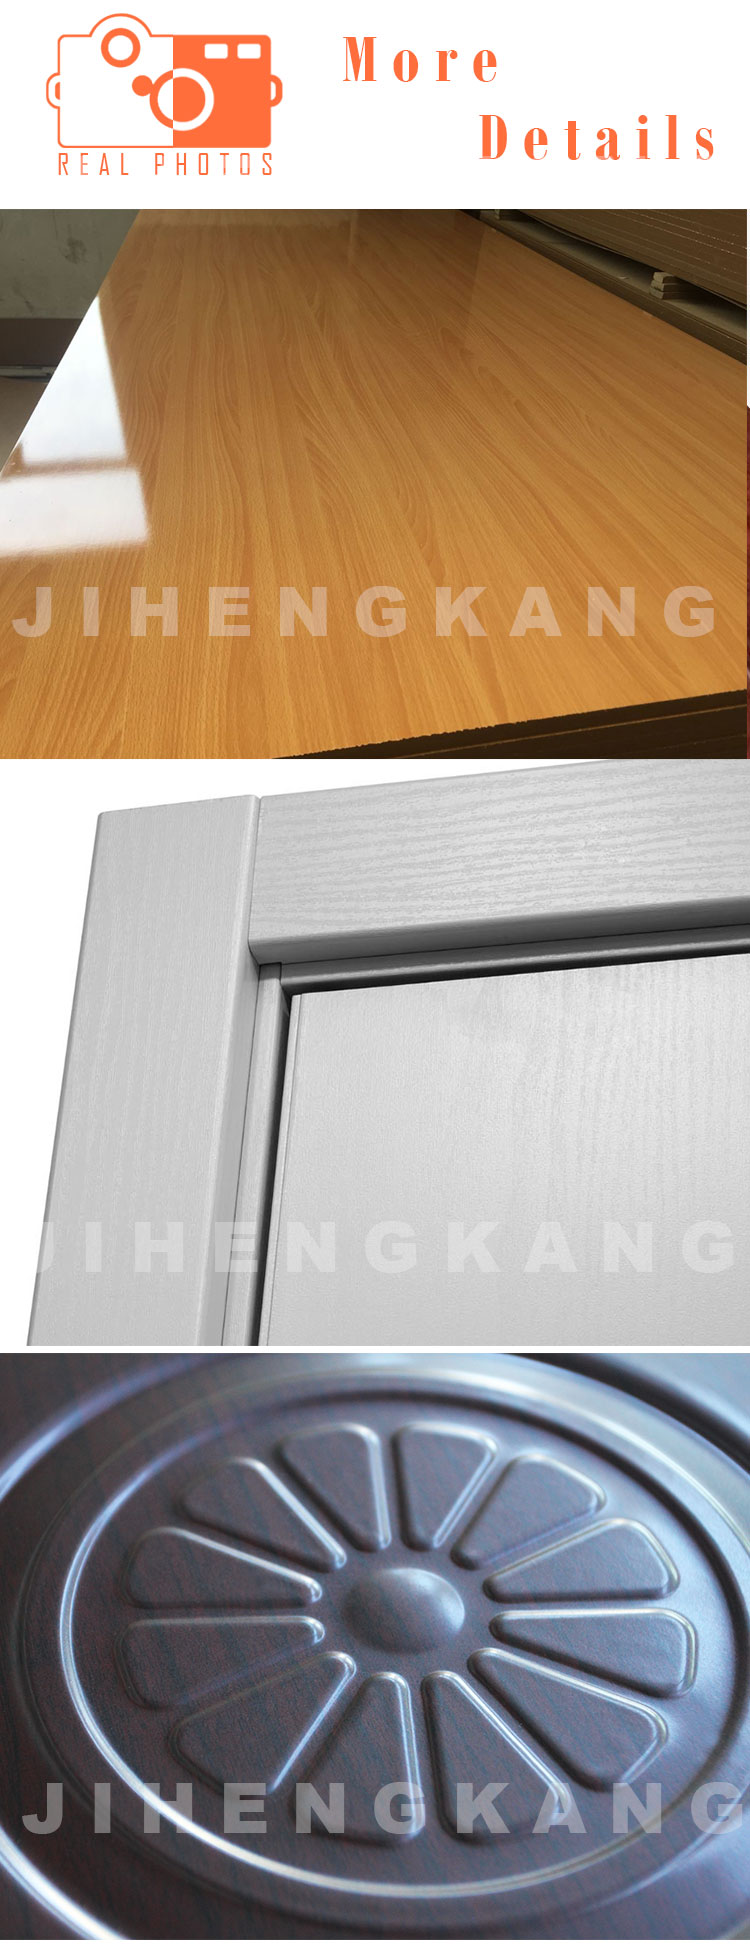 JHK-M03 Interior PVC Plastic Laminate Wooden Door